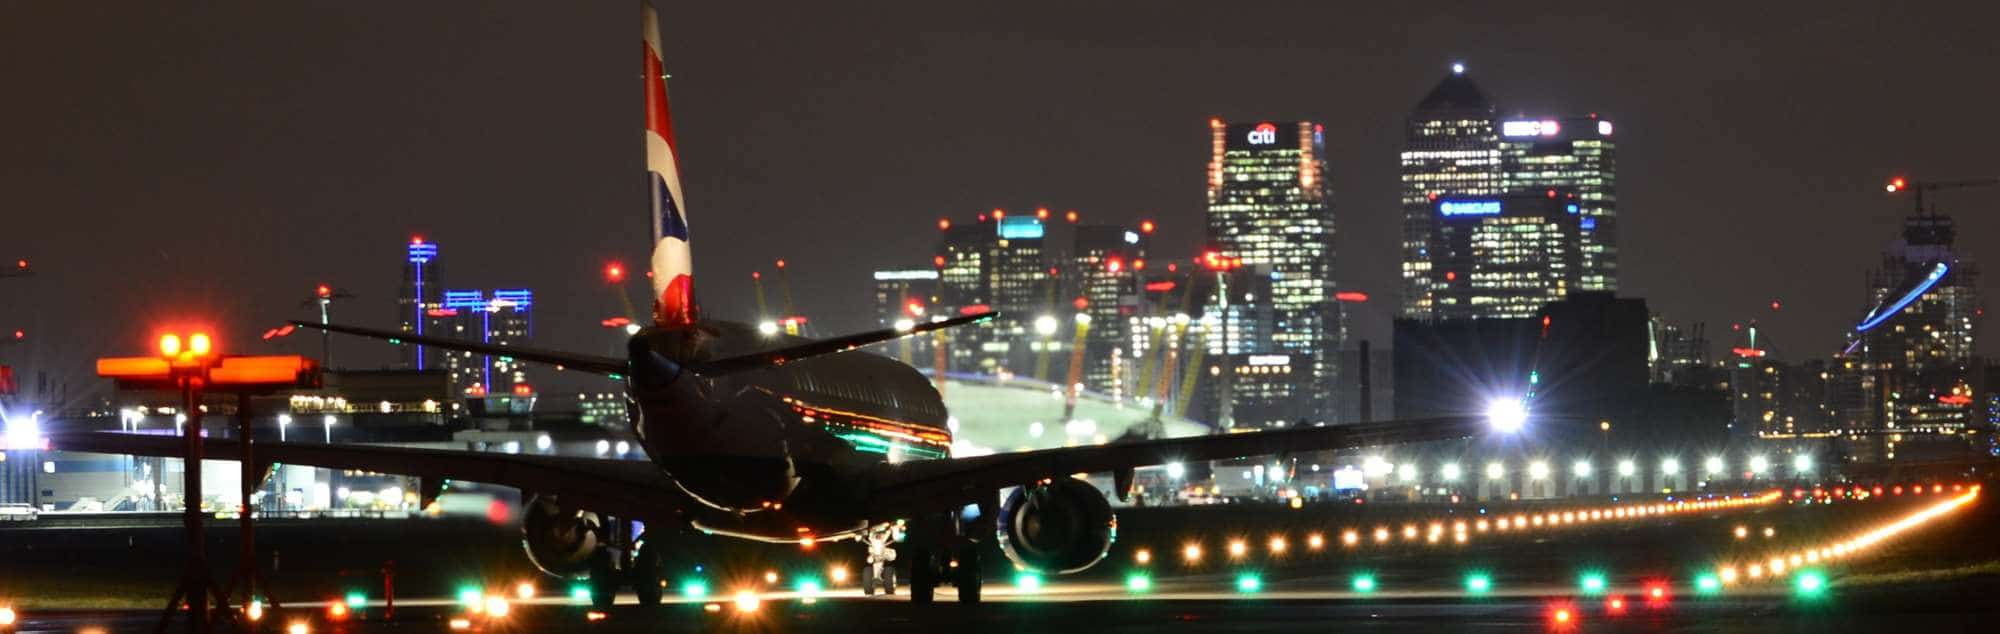 Flughafen london-city-lcy